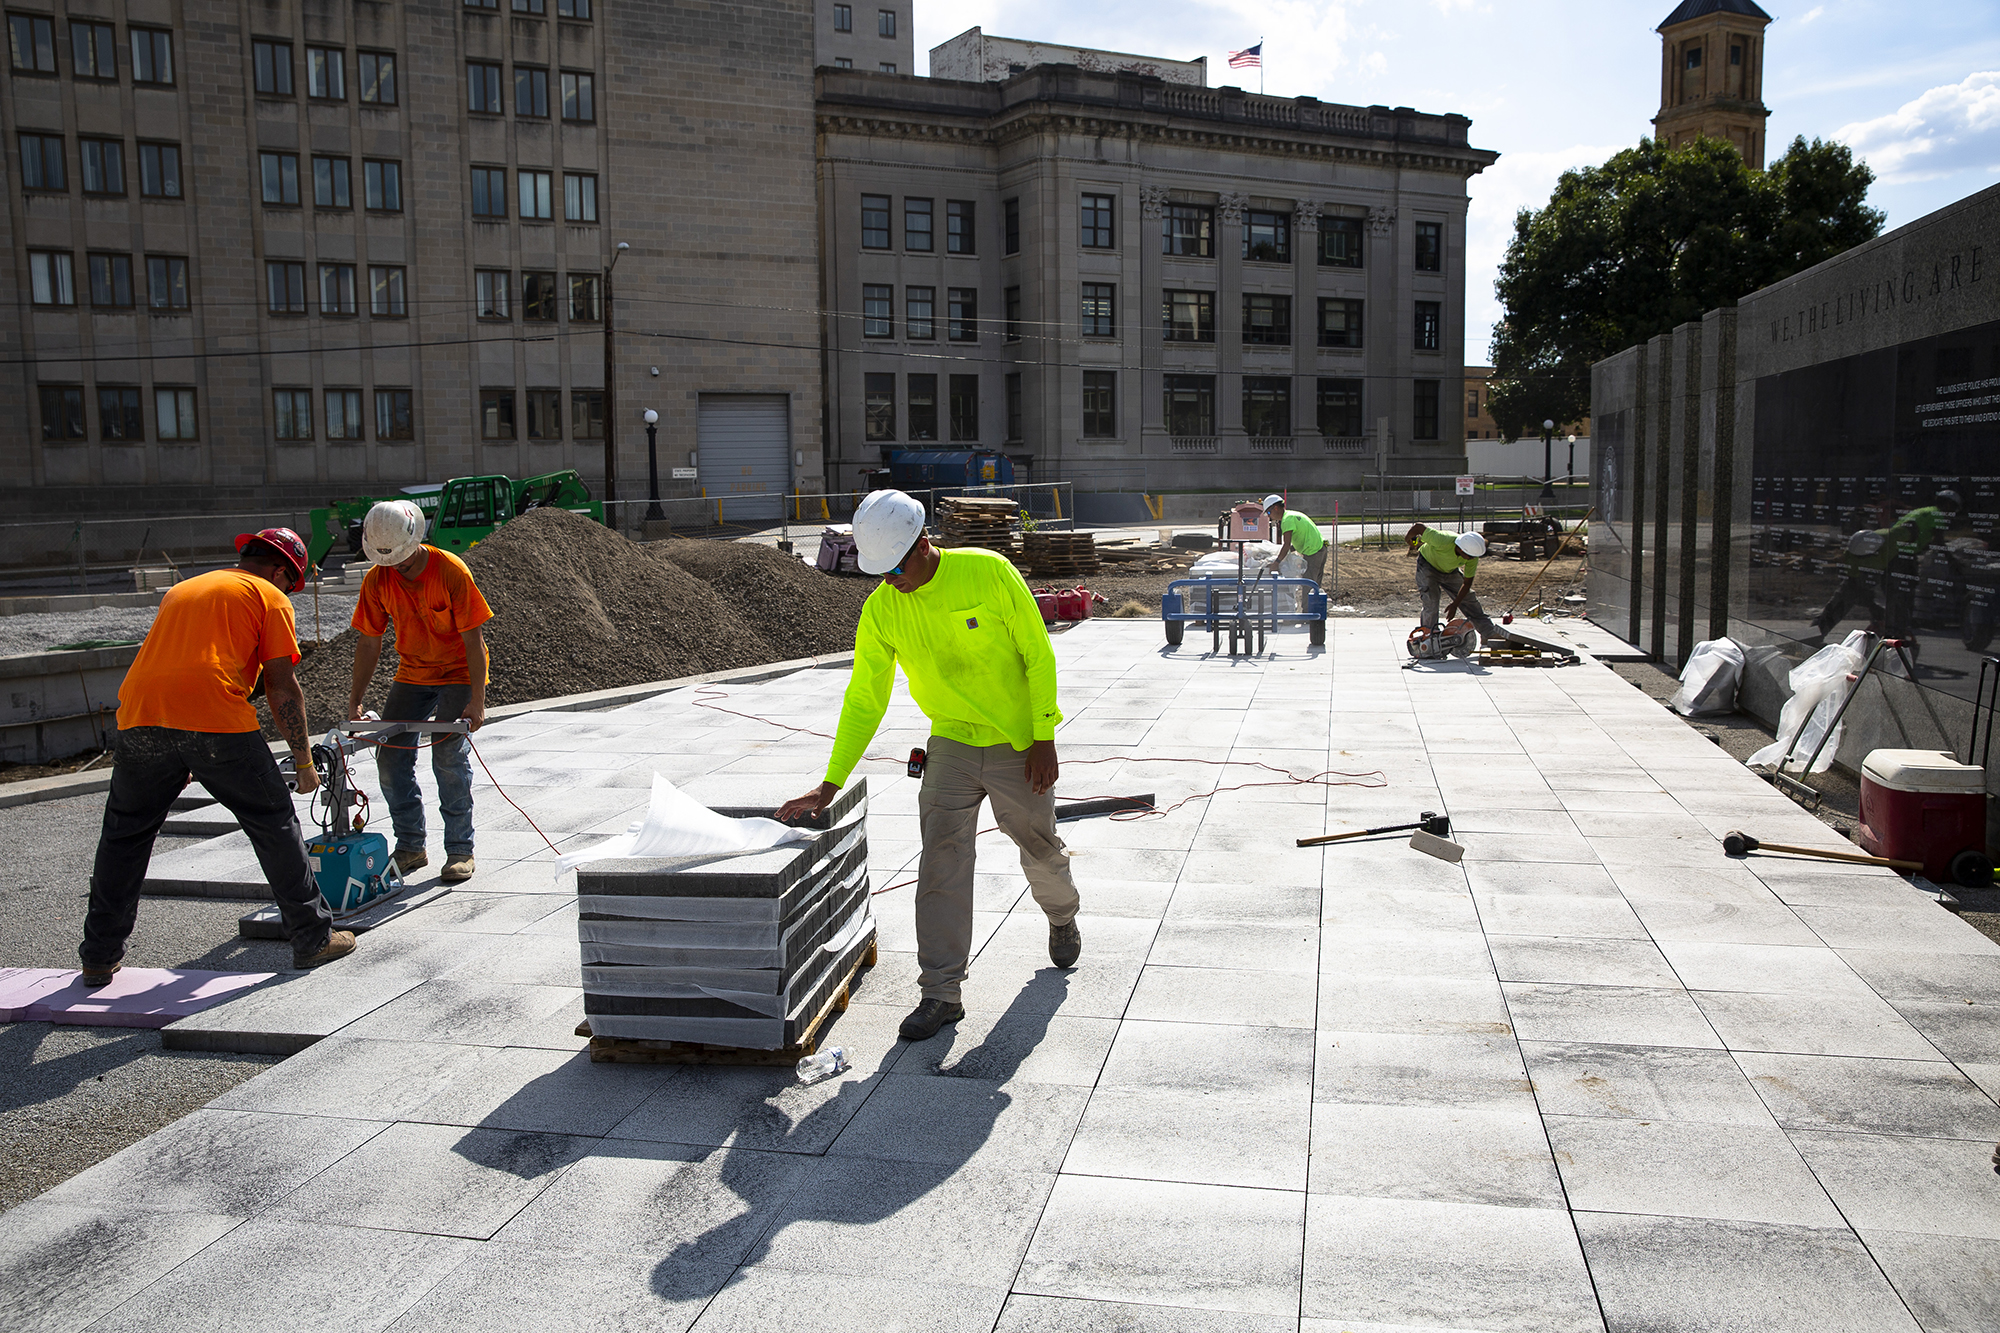 Workers from Cothren's Custom Hardscapes in Decatur place paver blocks on the north plaza of the Illinois State Police Memorial Park, under construction Tuesday, Sept. 18, 2018 on Lawrence Avenue between Sixth and Seventh streets in Springfield, Ill. The $2.5 million project is being paid for by donations from state troopers, the public and businesses, and will include a granite memorial wall that will list the names of State Police troopers who have been killed in the line of duty, sculptures, and a water feature. According to Ron Cooley, president of the Illinois State Police Heritage Foundation, the park will be officially dedicated Oct. 2. [Rich Saal/The State Journal-Register]